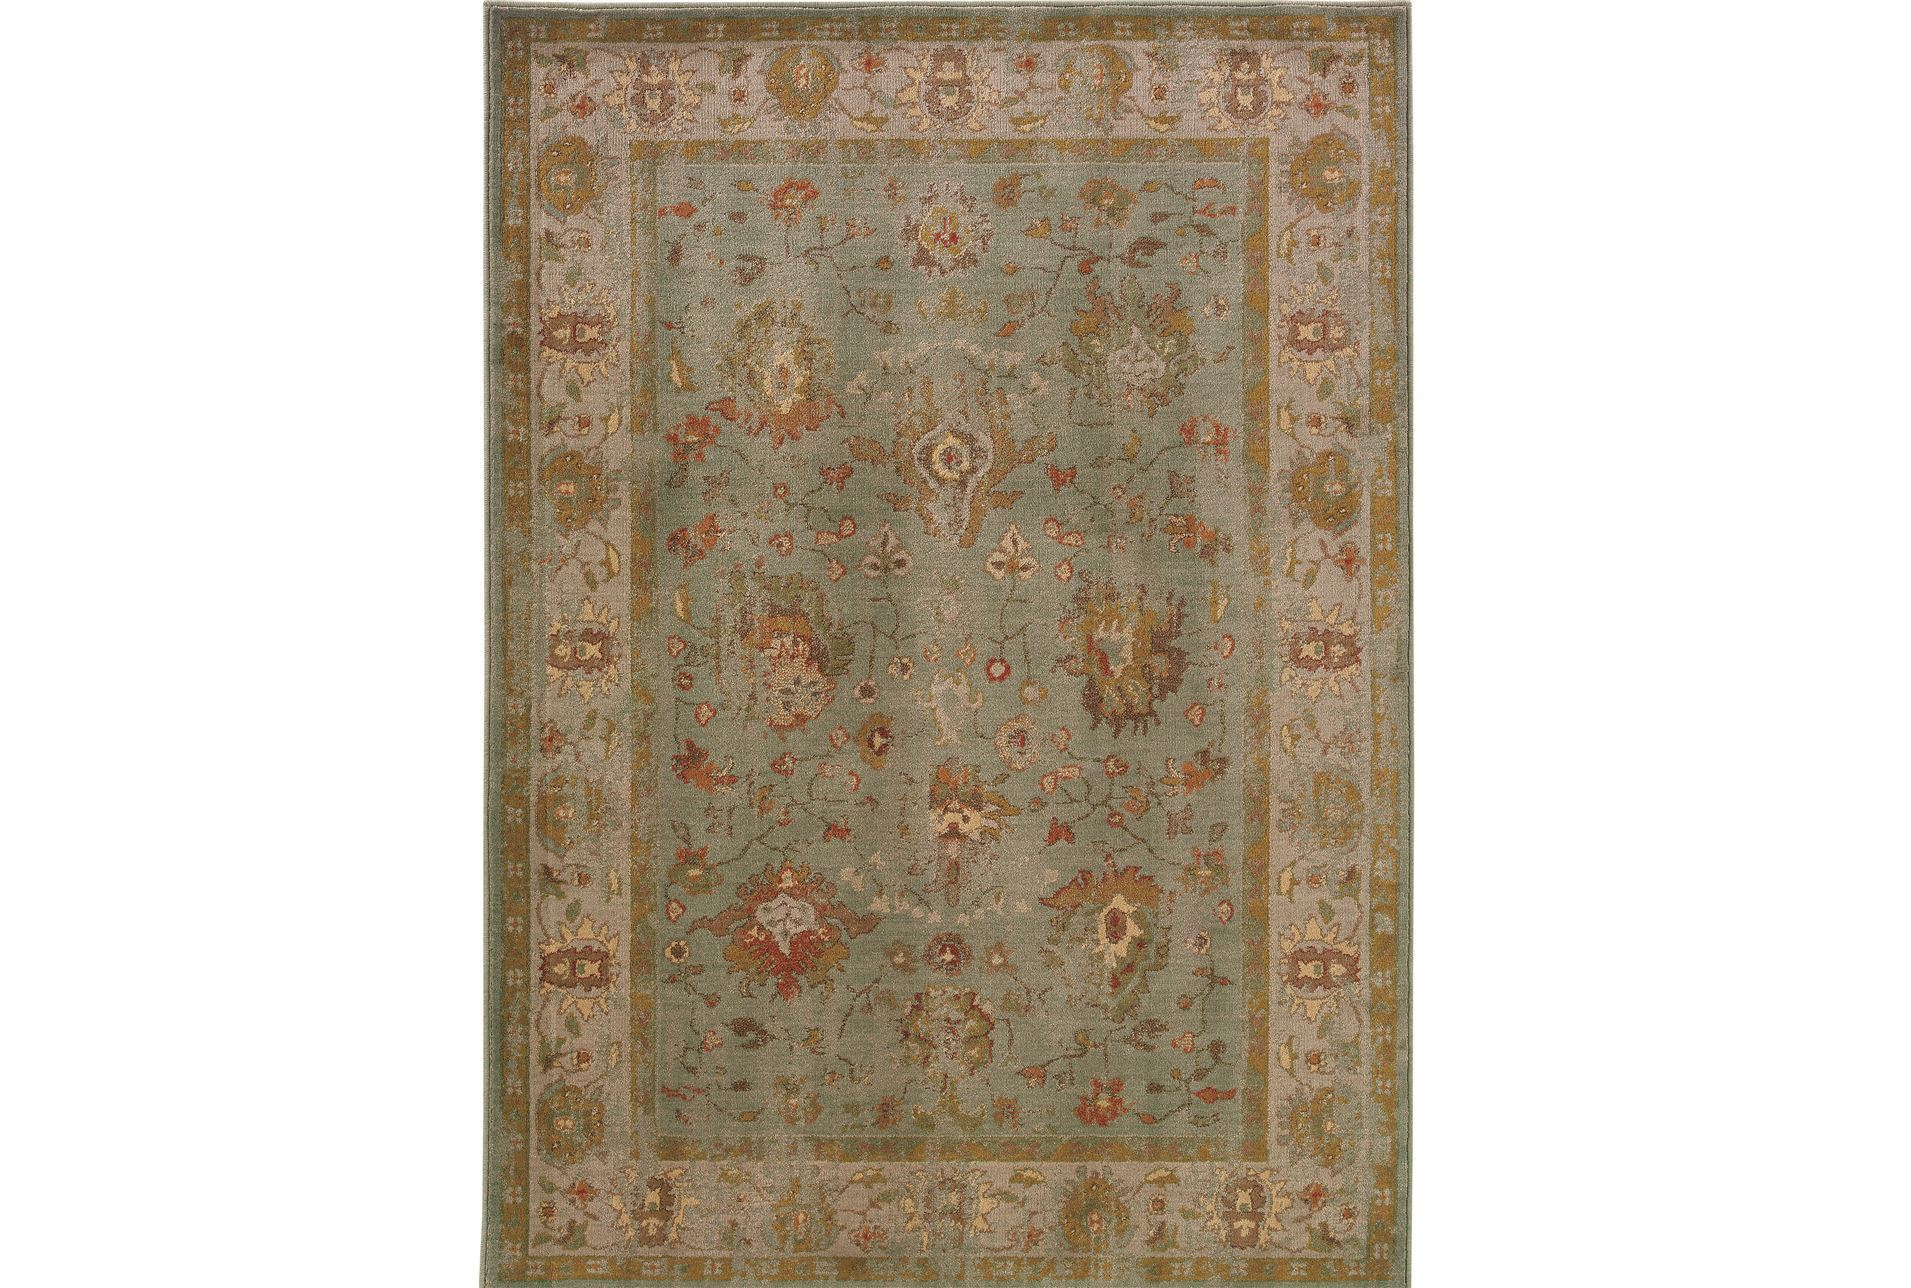 94x130 rug ambrose sky living spaces